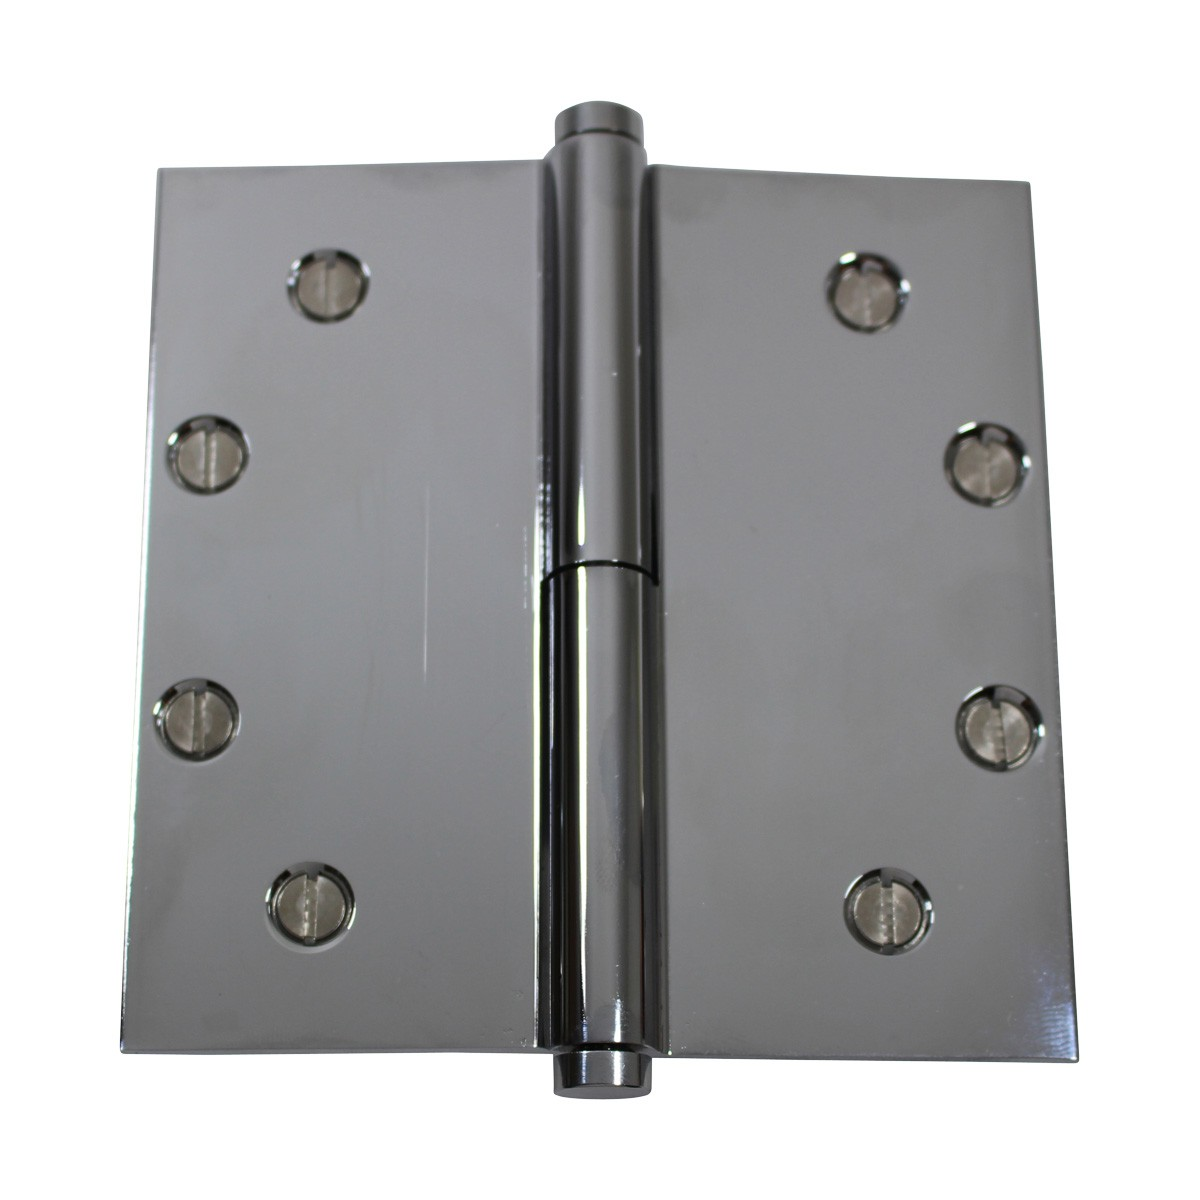 5 in. Lift Off Right Chrome Brass Door Hinge Coin Tip Door Hinges Door Hinge Solid Brass Hinge